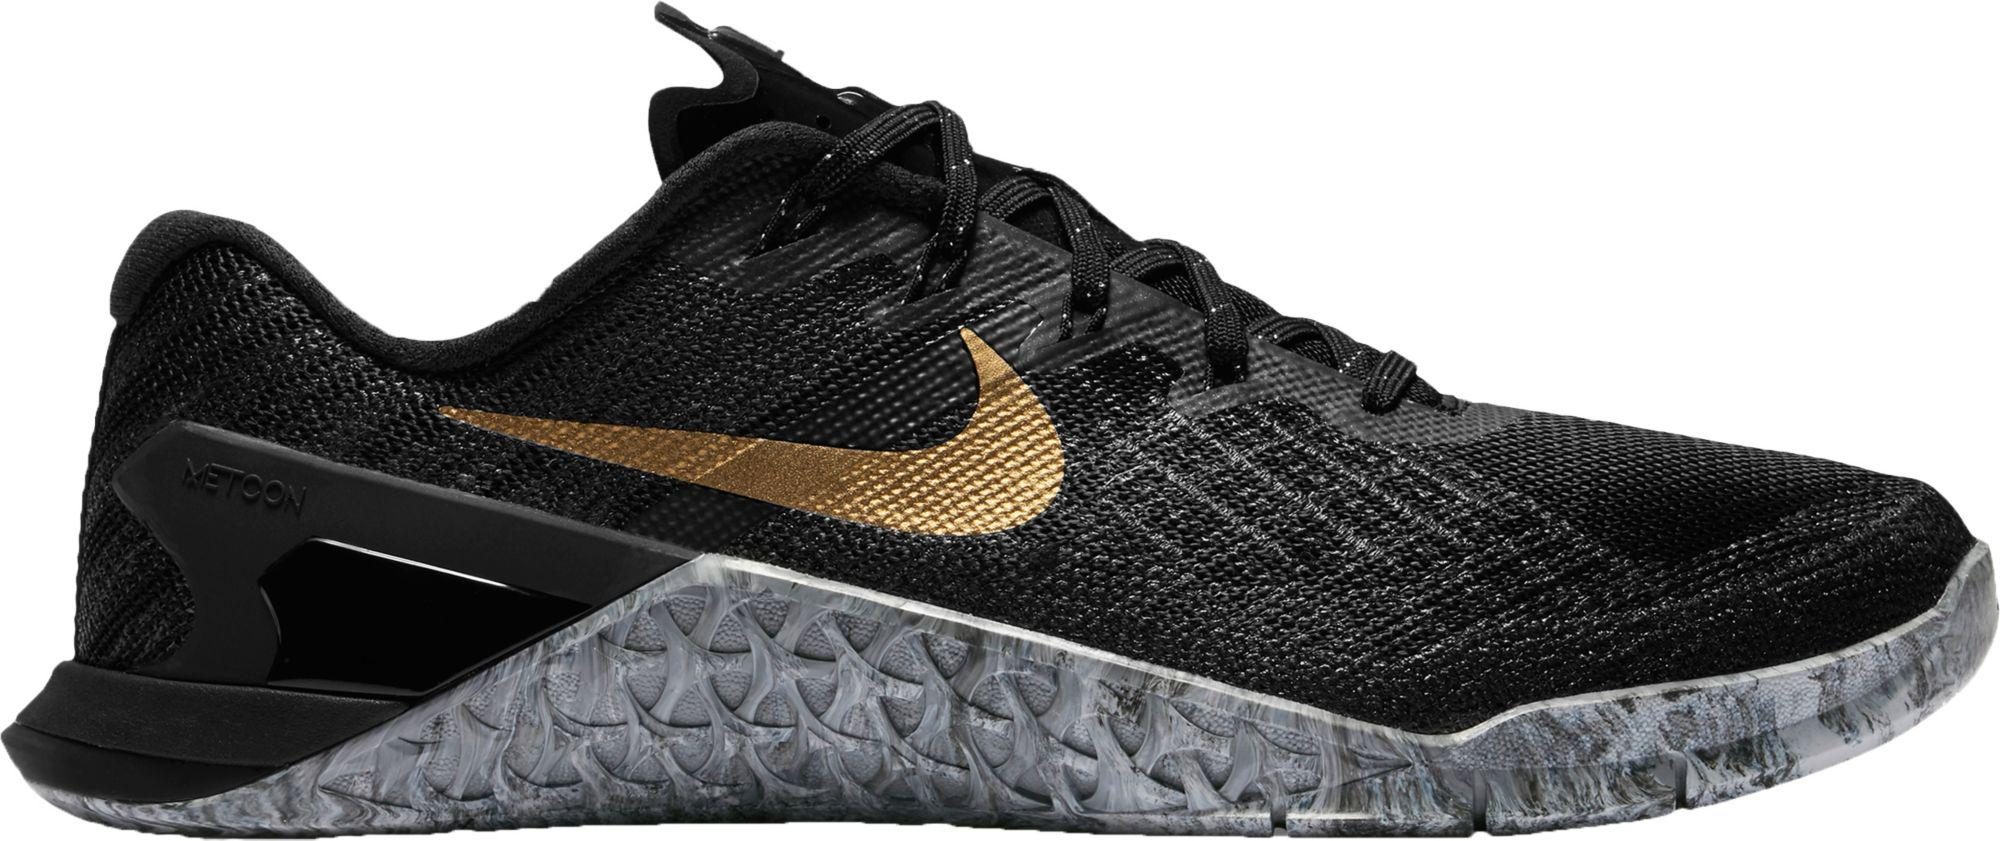 21c109aa550 Lyst - Nike Metcon 3 Amp Training Shoes in Black for Men